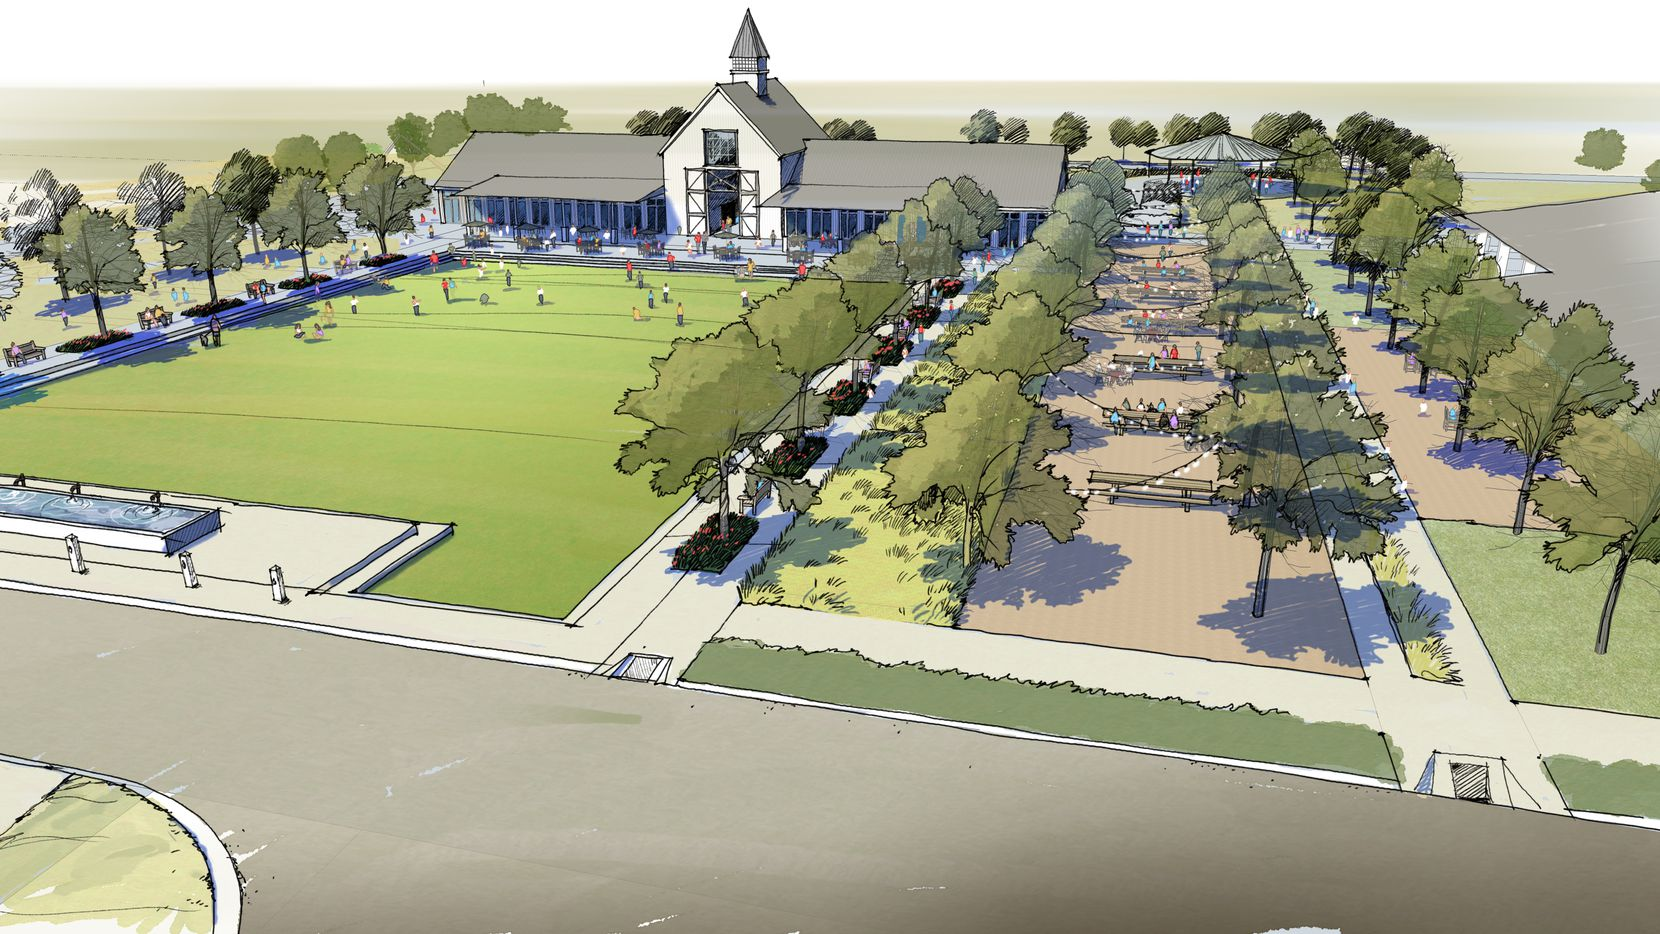 Hillwood Communities' new Pecan Square development is planned with more than 3,000 homes.